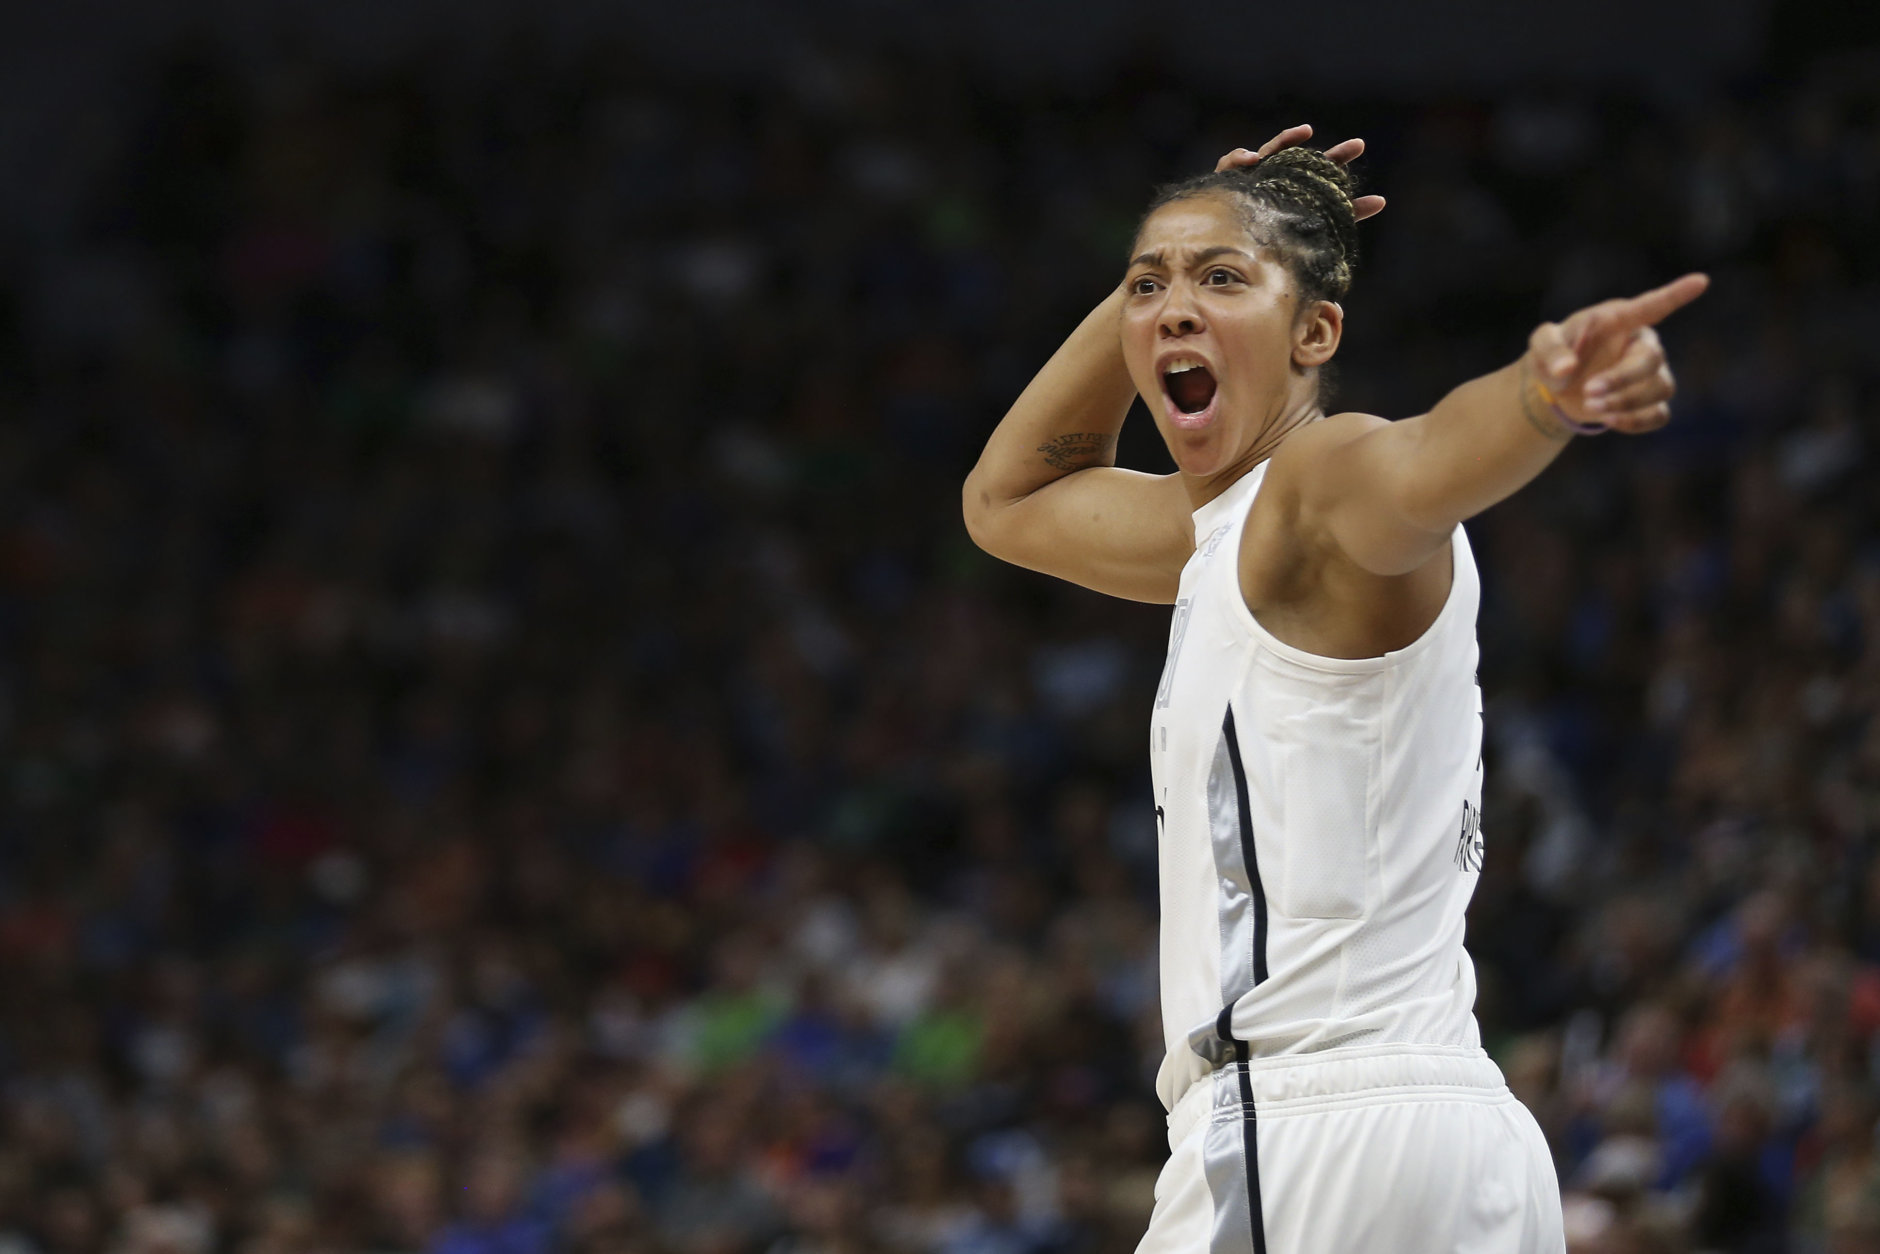 PHOTOS: WNBA All-Star Game highlights | WTOP